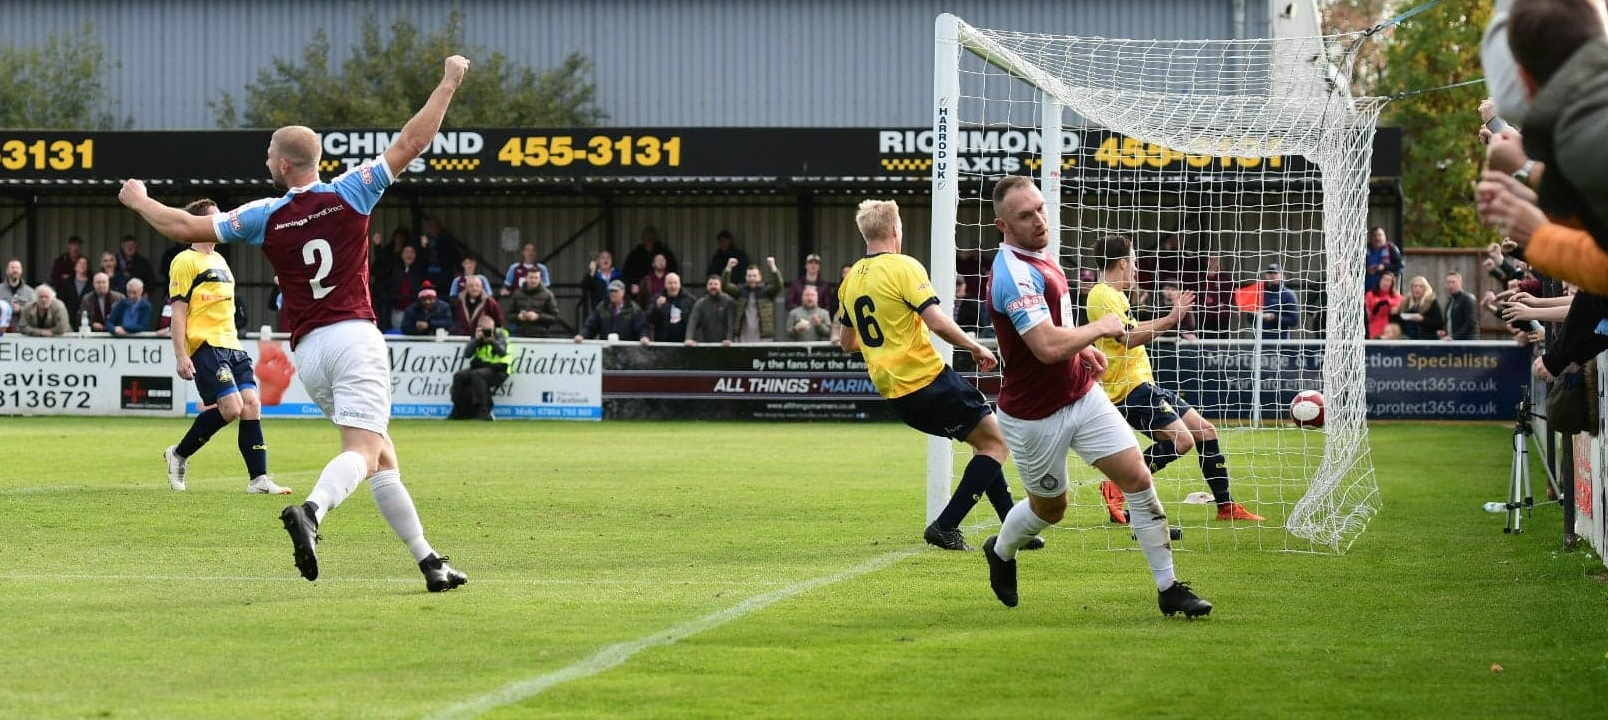 South Shields vs Gainsborough Trinity